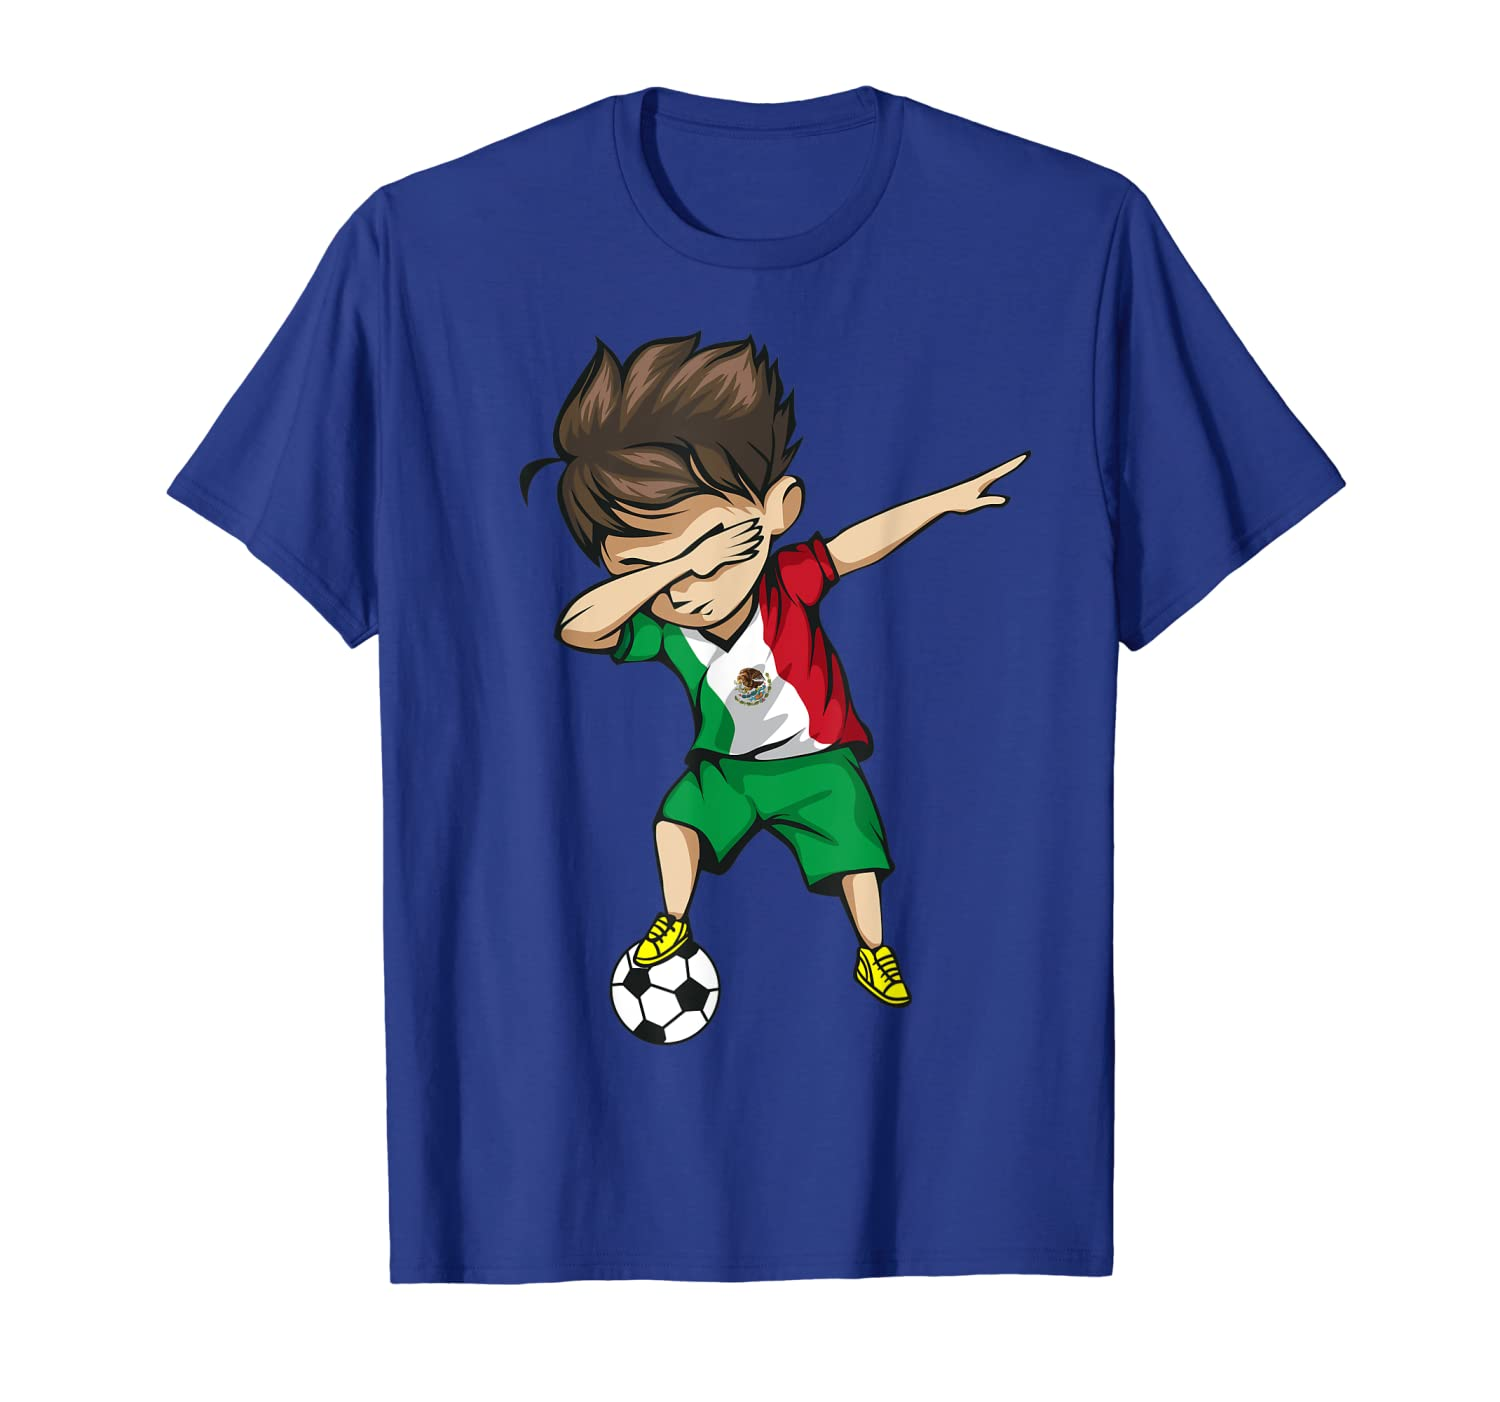 89ddff96979 Amazon.com: Dabbing Soccer Boy Mexico Jersey Shirt - Mexican Football:  Clothing